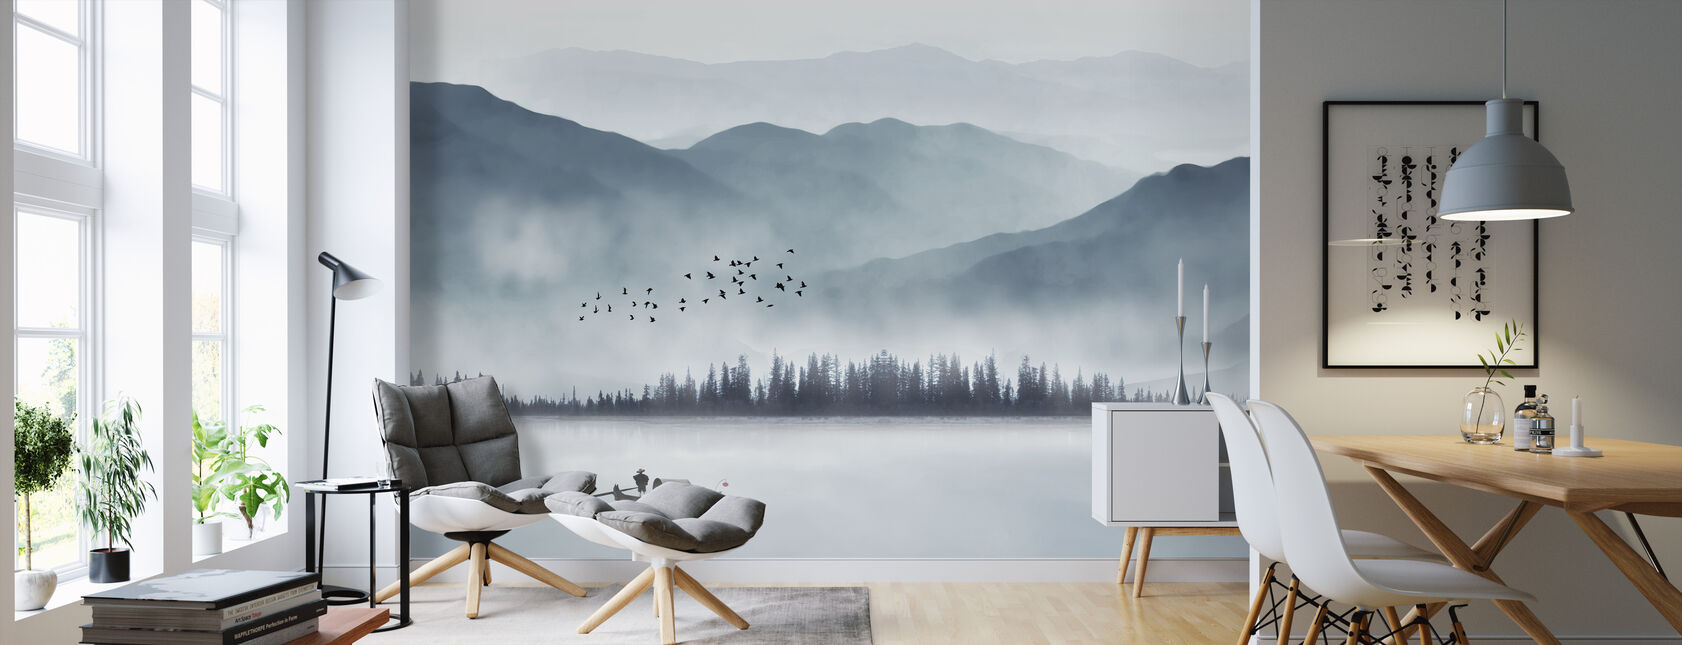 Fisherman - Wallpaper - Living Room